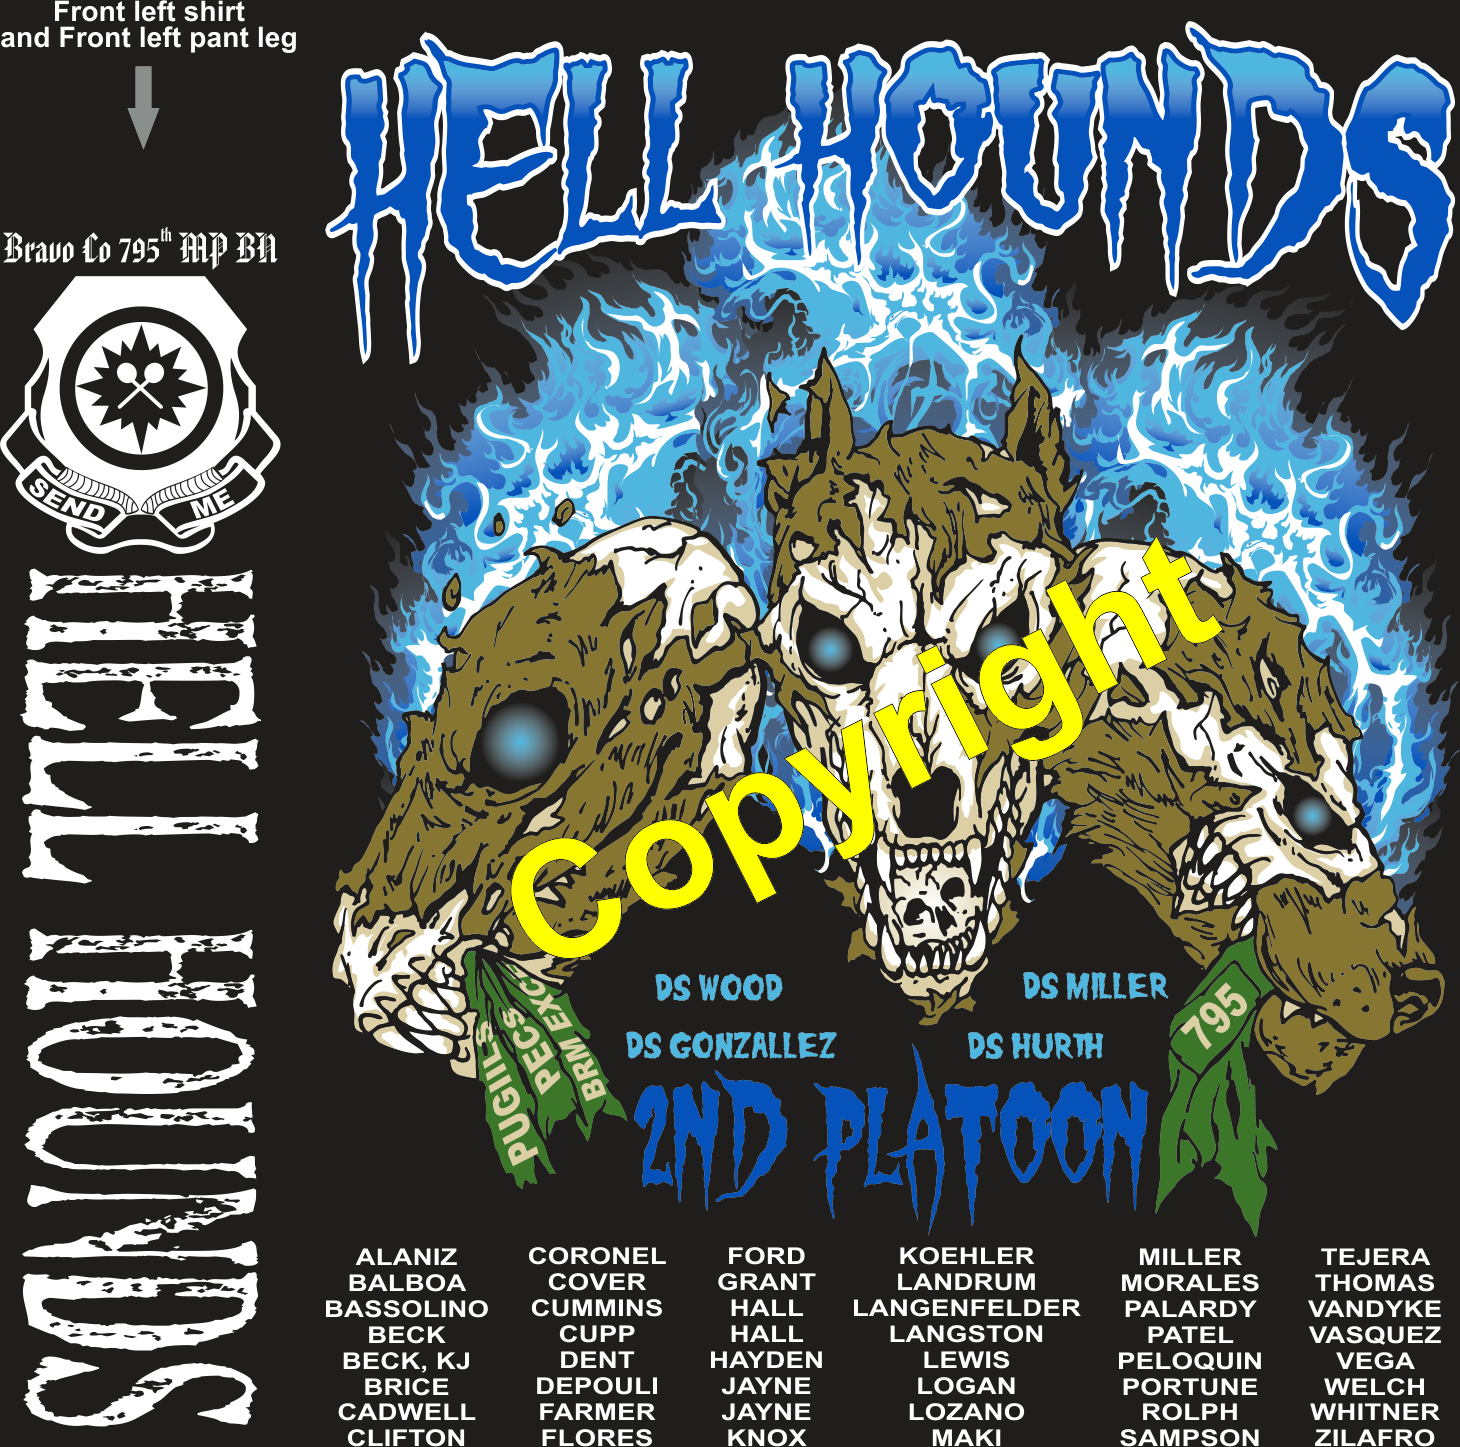 BRAVO 795 HELL HOUNDS GRADUATING DAY 7-12-2018 digital